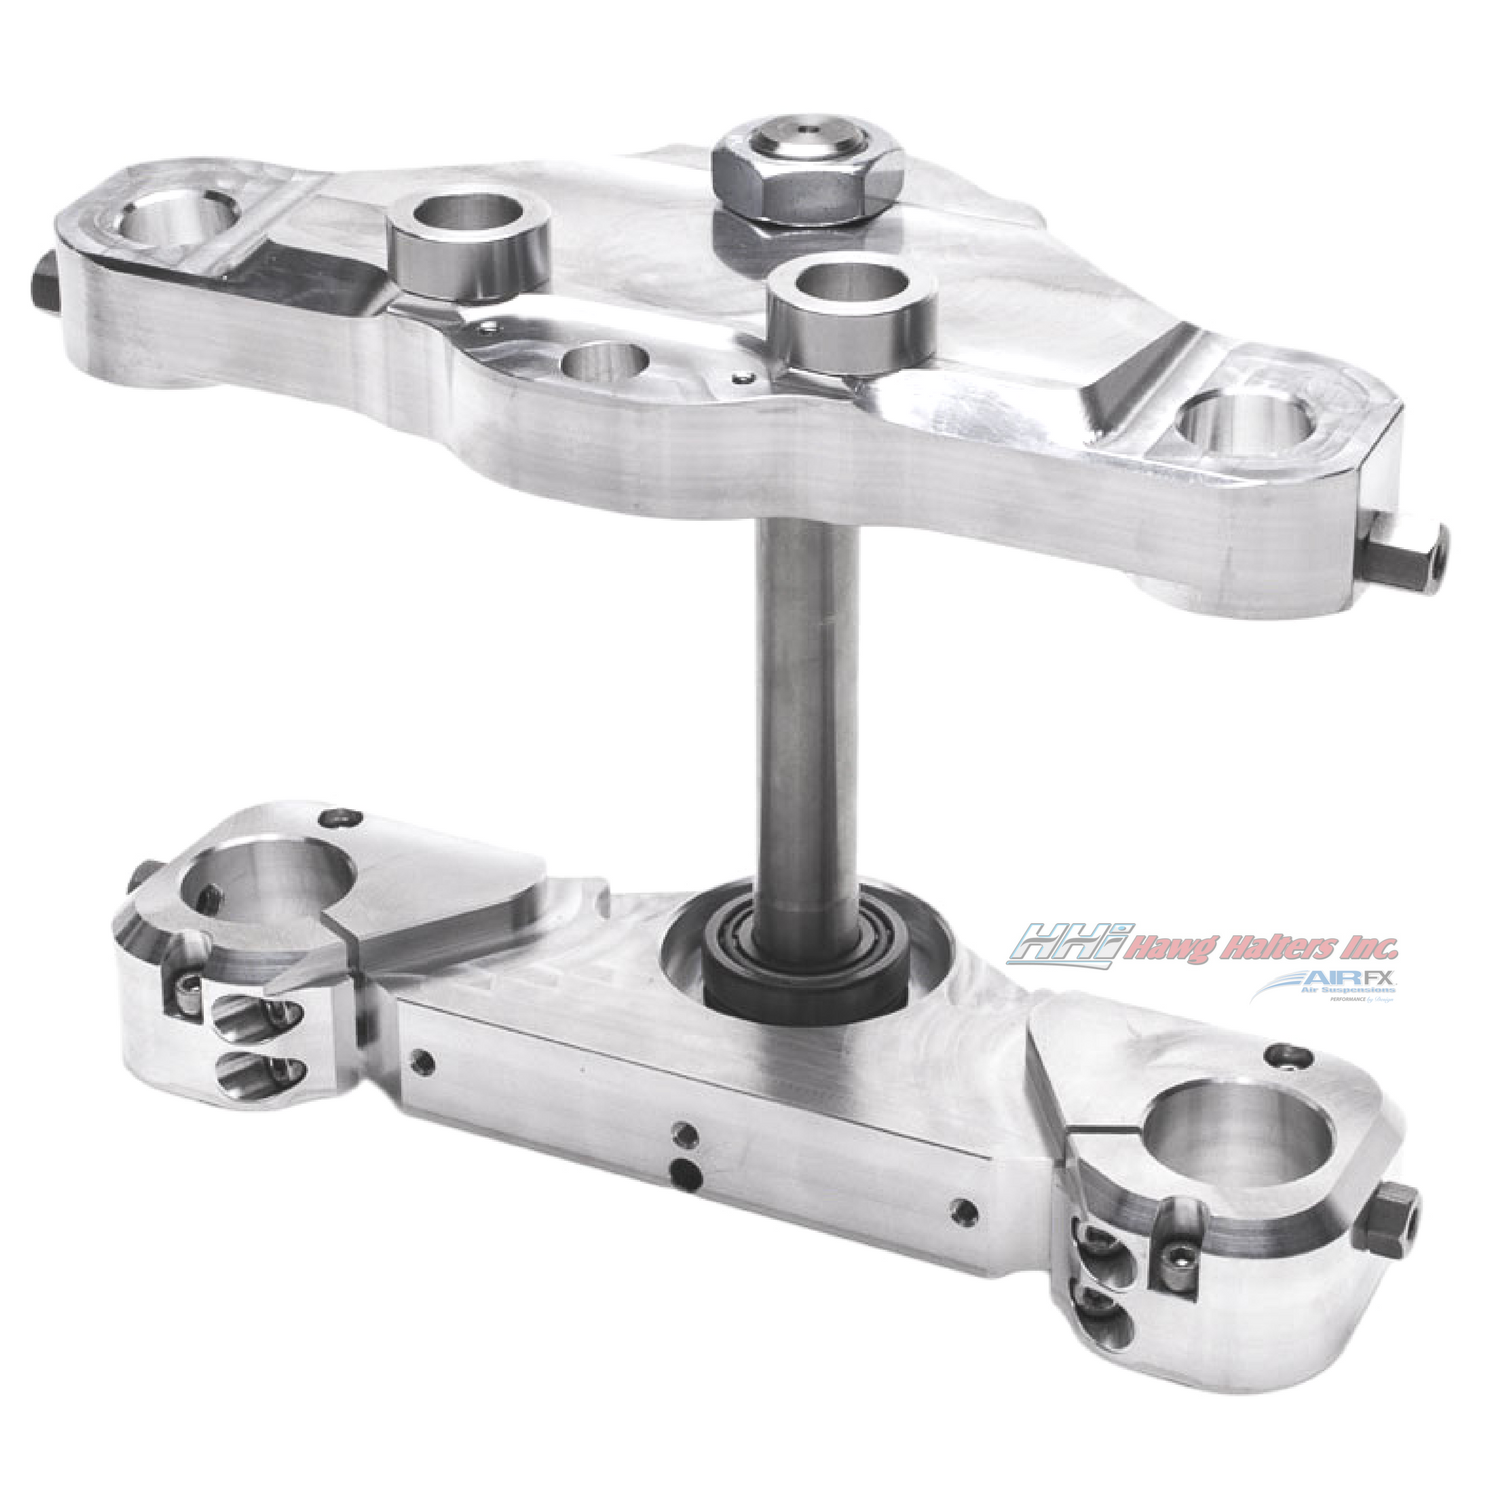 Bolt-On triple tree kit for a 23'' wheel. Machine finish. Fits 2000-2013 FL touring (41FLMX23) [+$699.00]